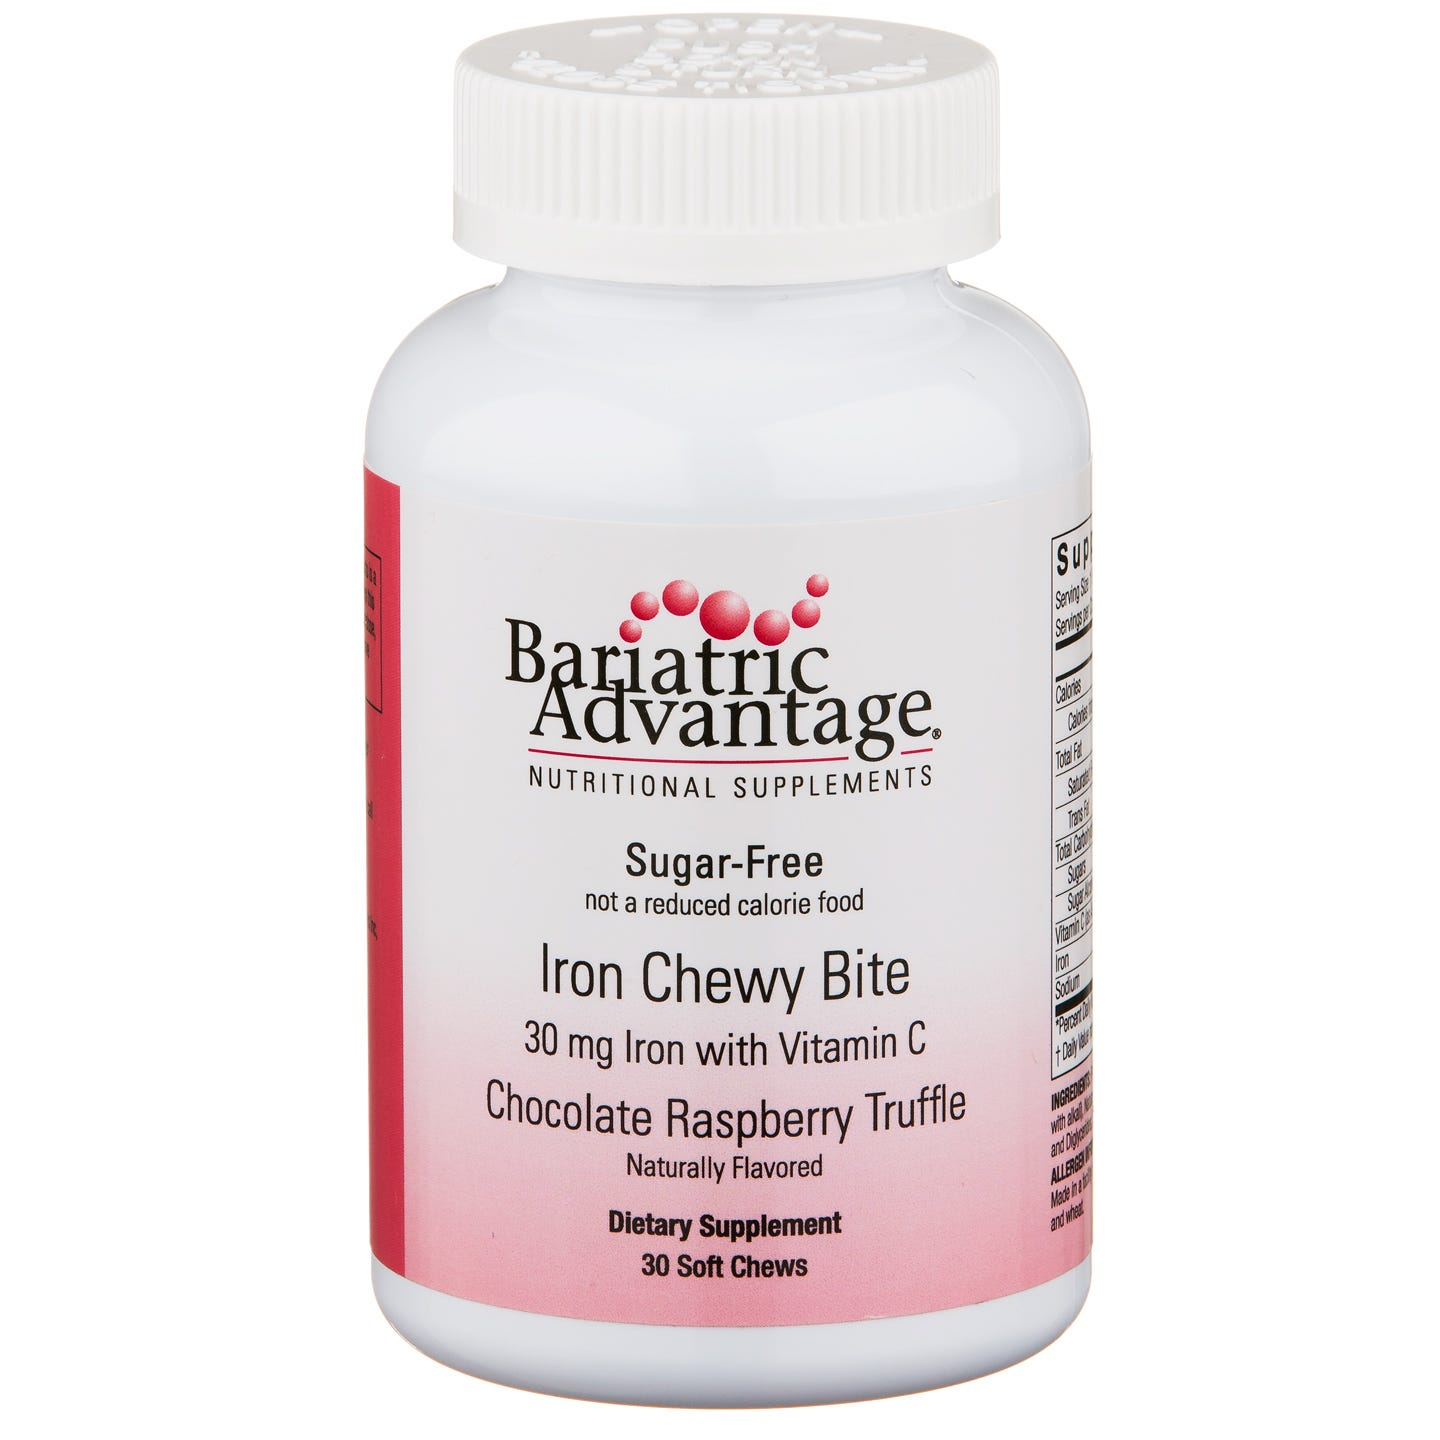 Iron Chewy Bites (30 ct) - Bariatric Advantage - Rapid Diet Weight Loss Products Shop